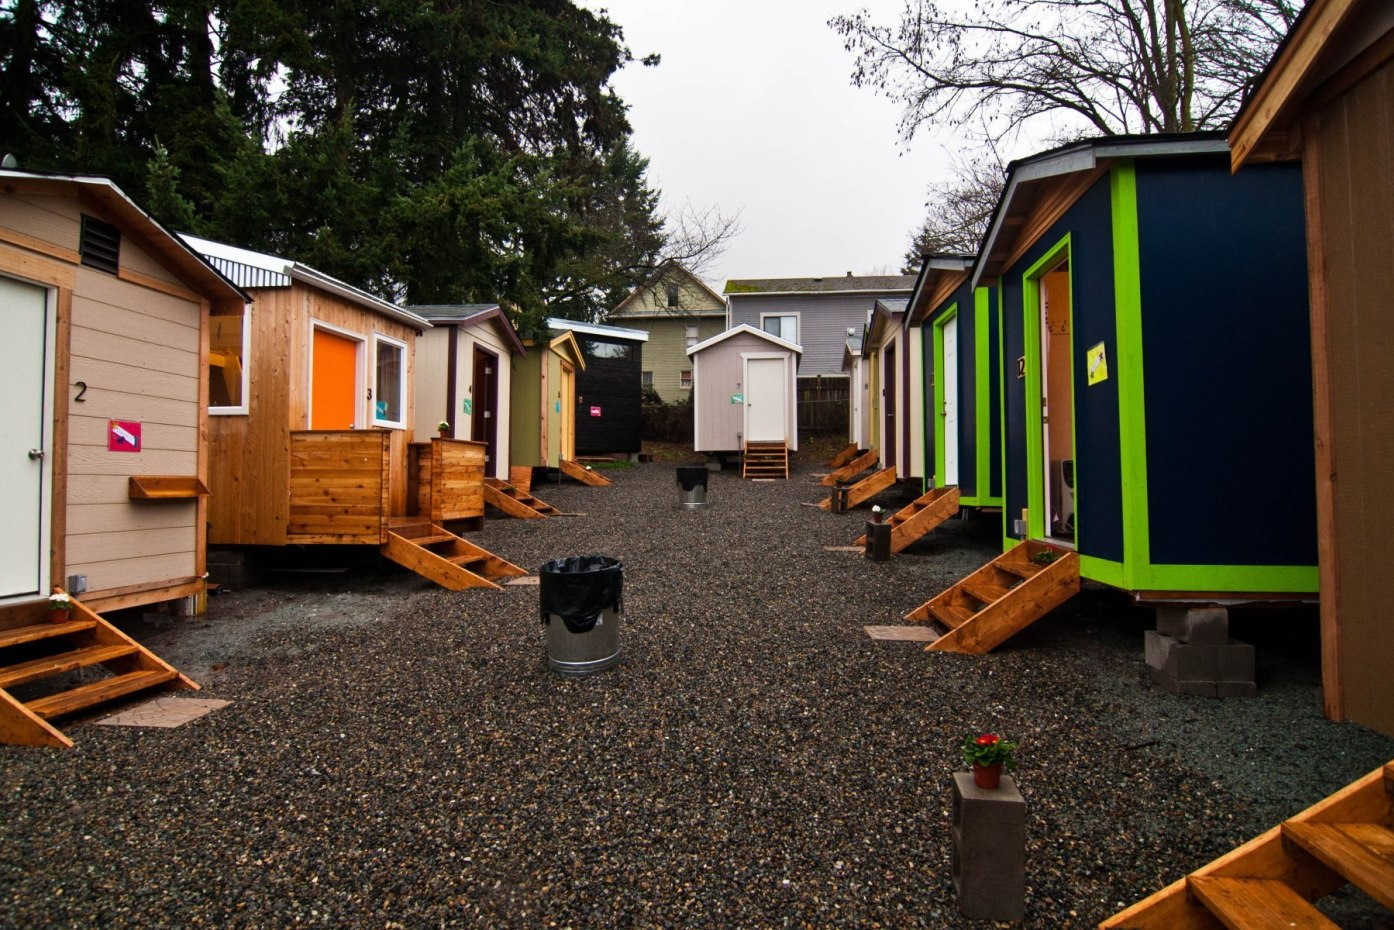 Photo of a tiny house village in Seattle